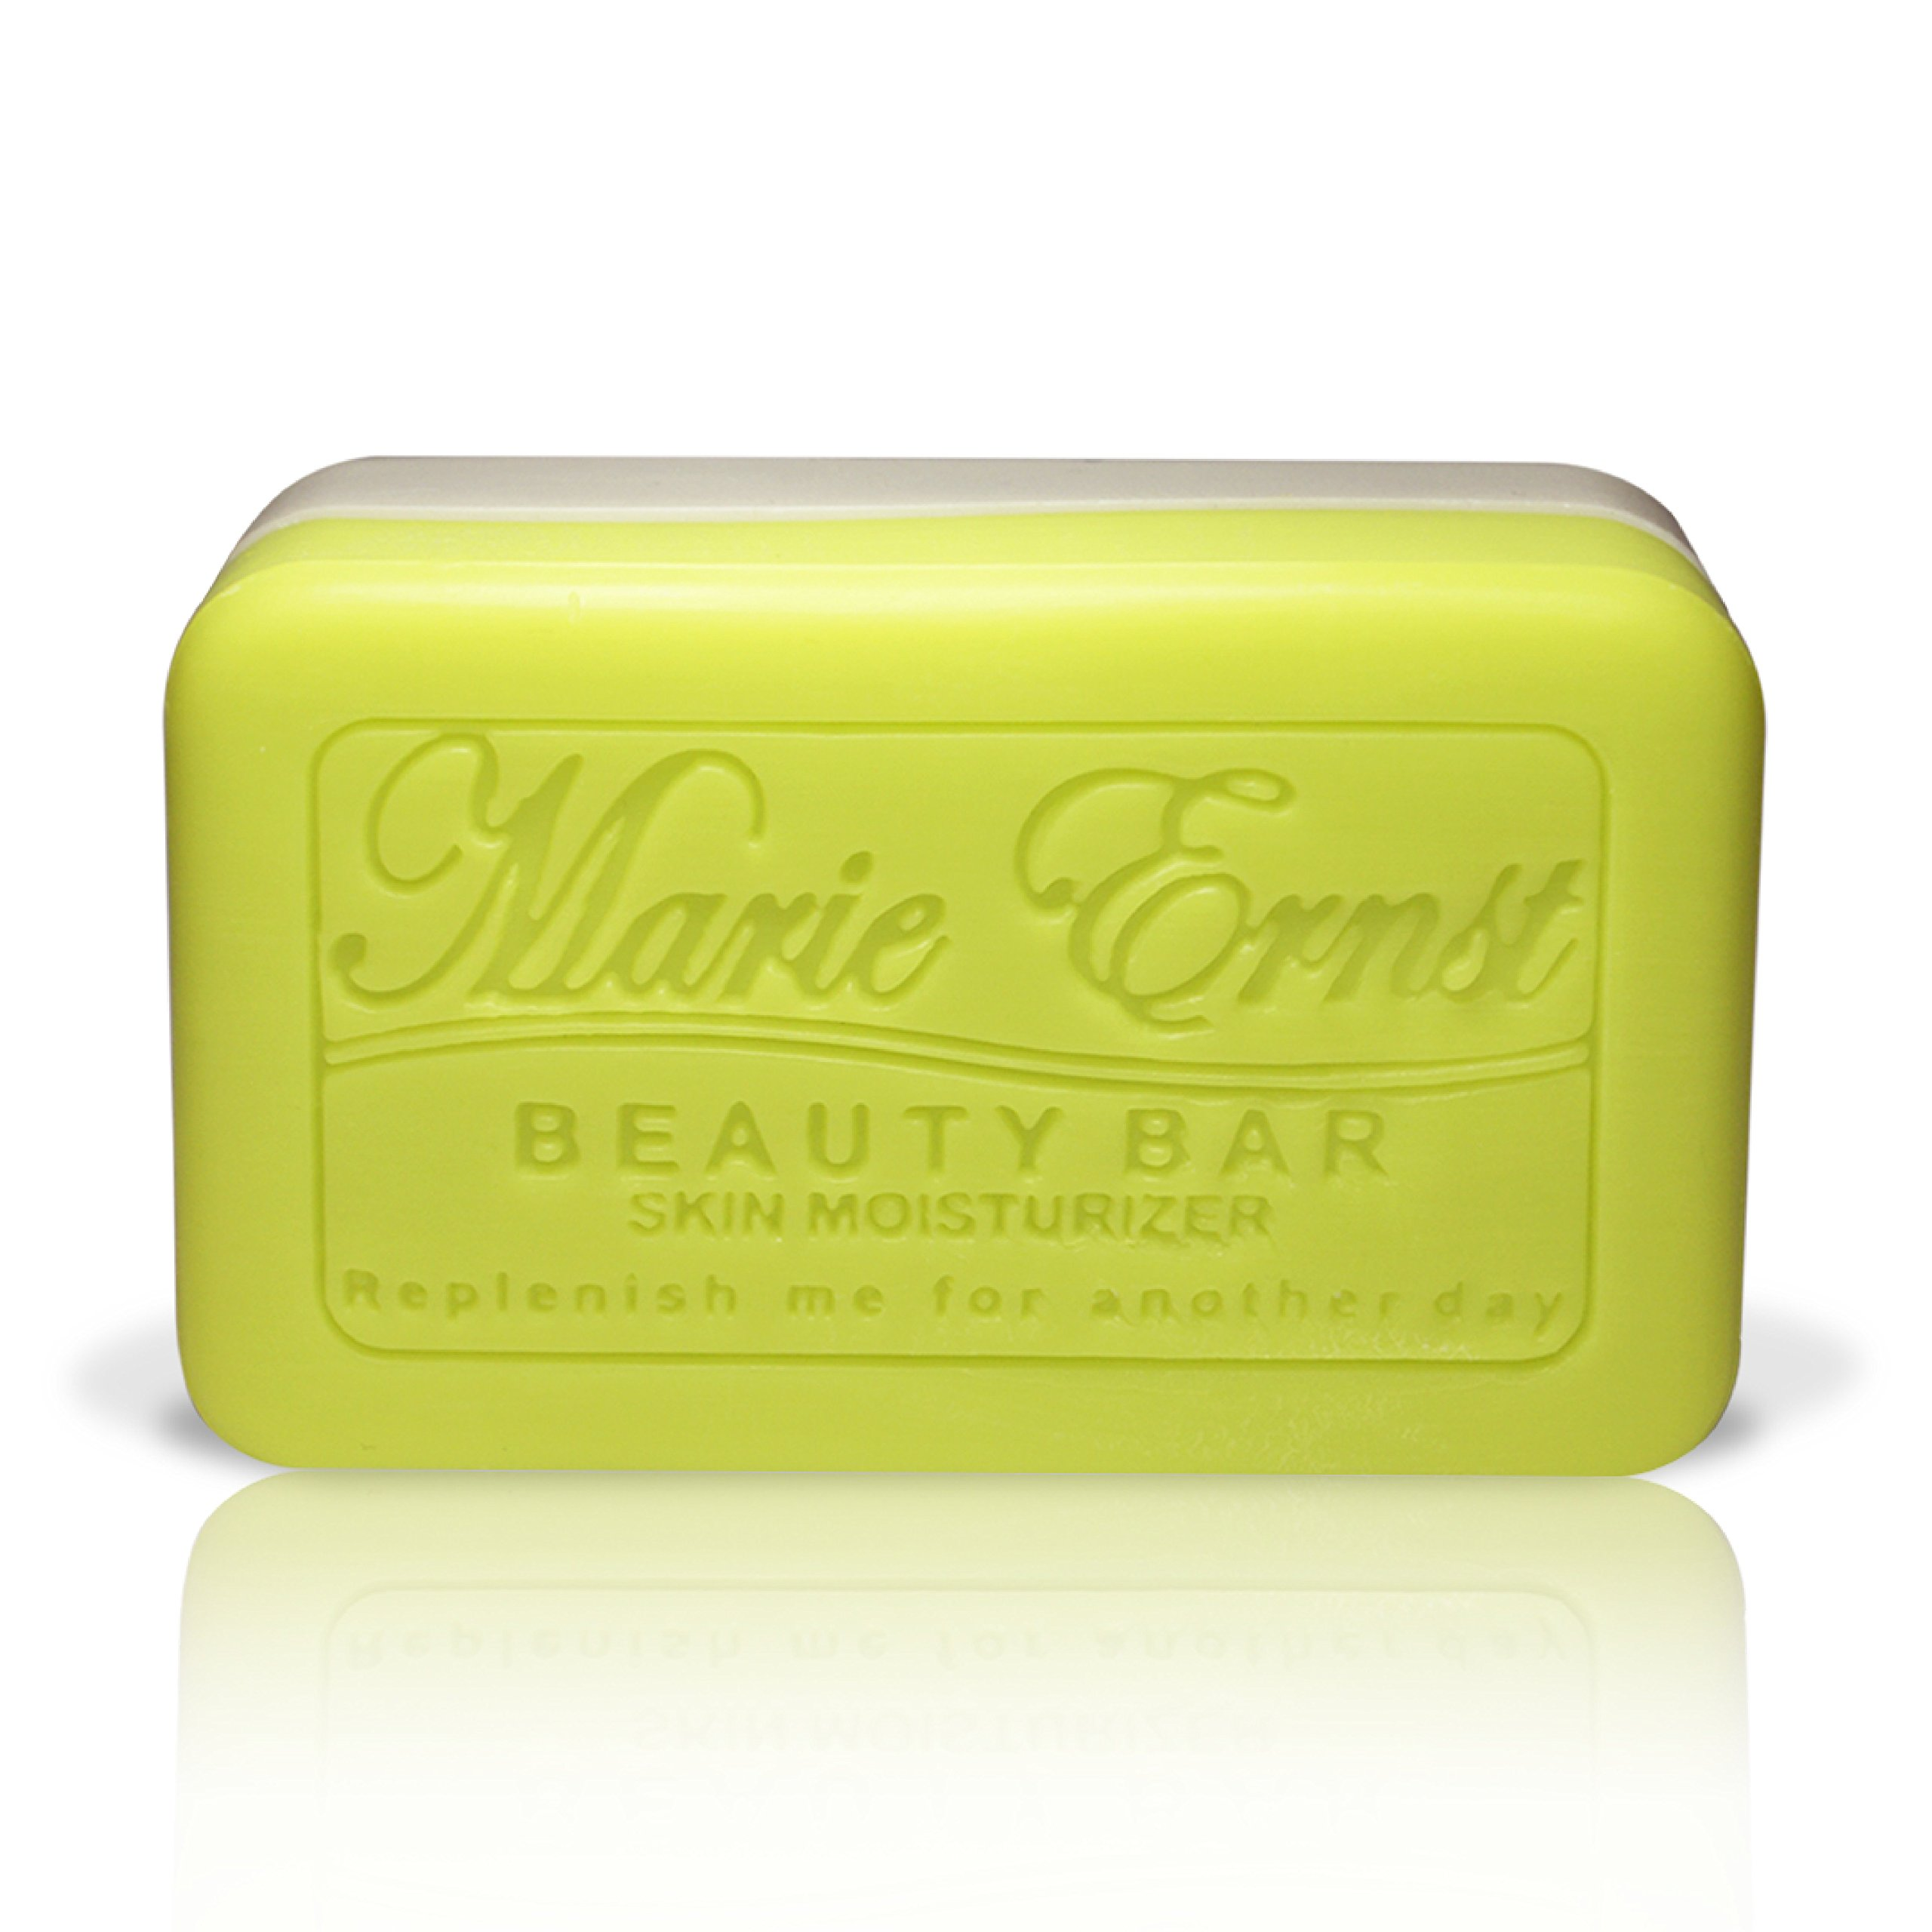 Marie Ernst Pumice Exfoliating Bar Soap with Shea Butter, Olive Oil, Aromatic Lemon Verbena, Vegan Bath Soap for Men and Women for the Ultimate Luxurious Bathing Experience